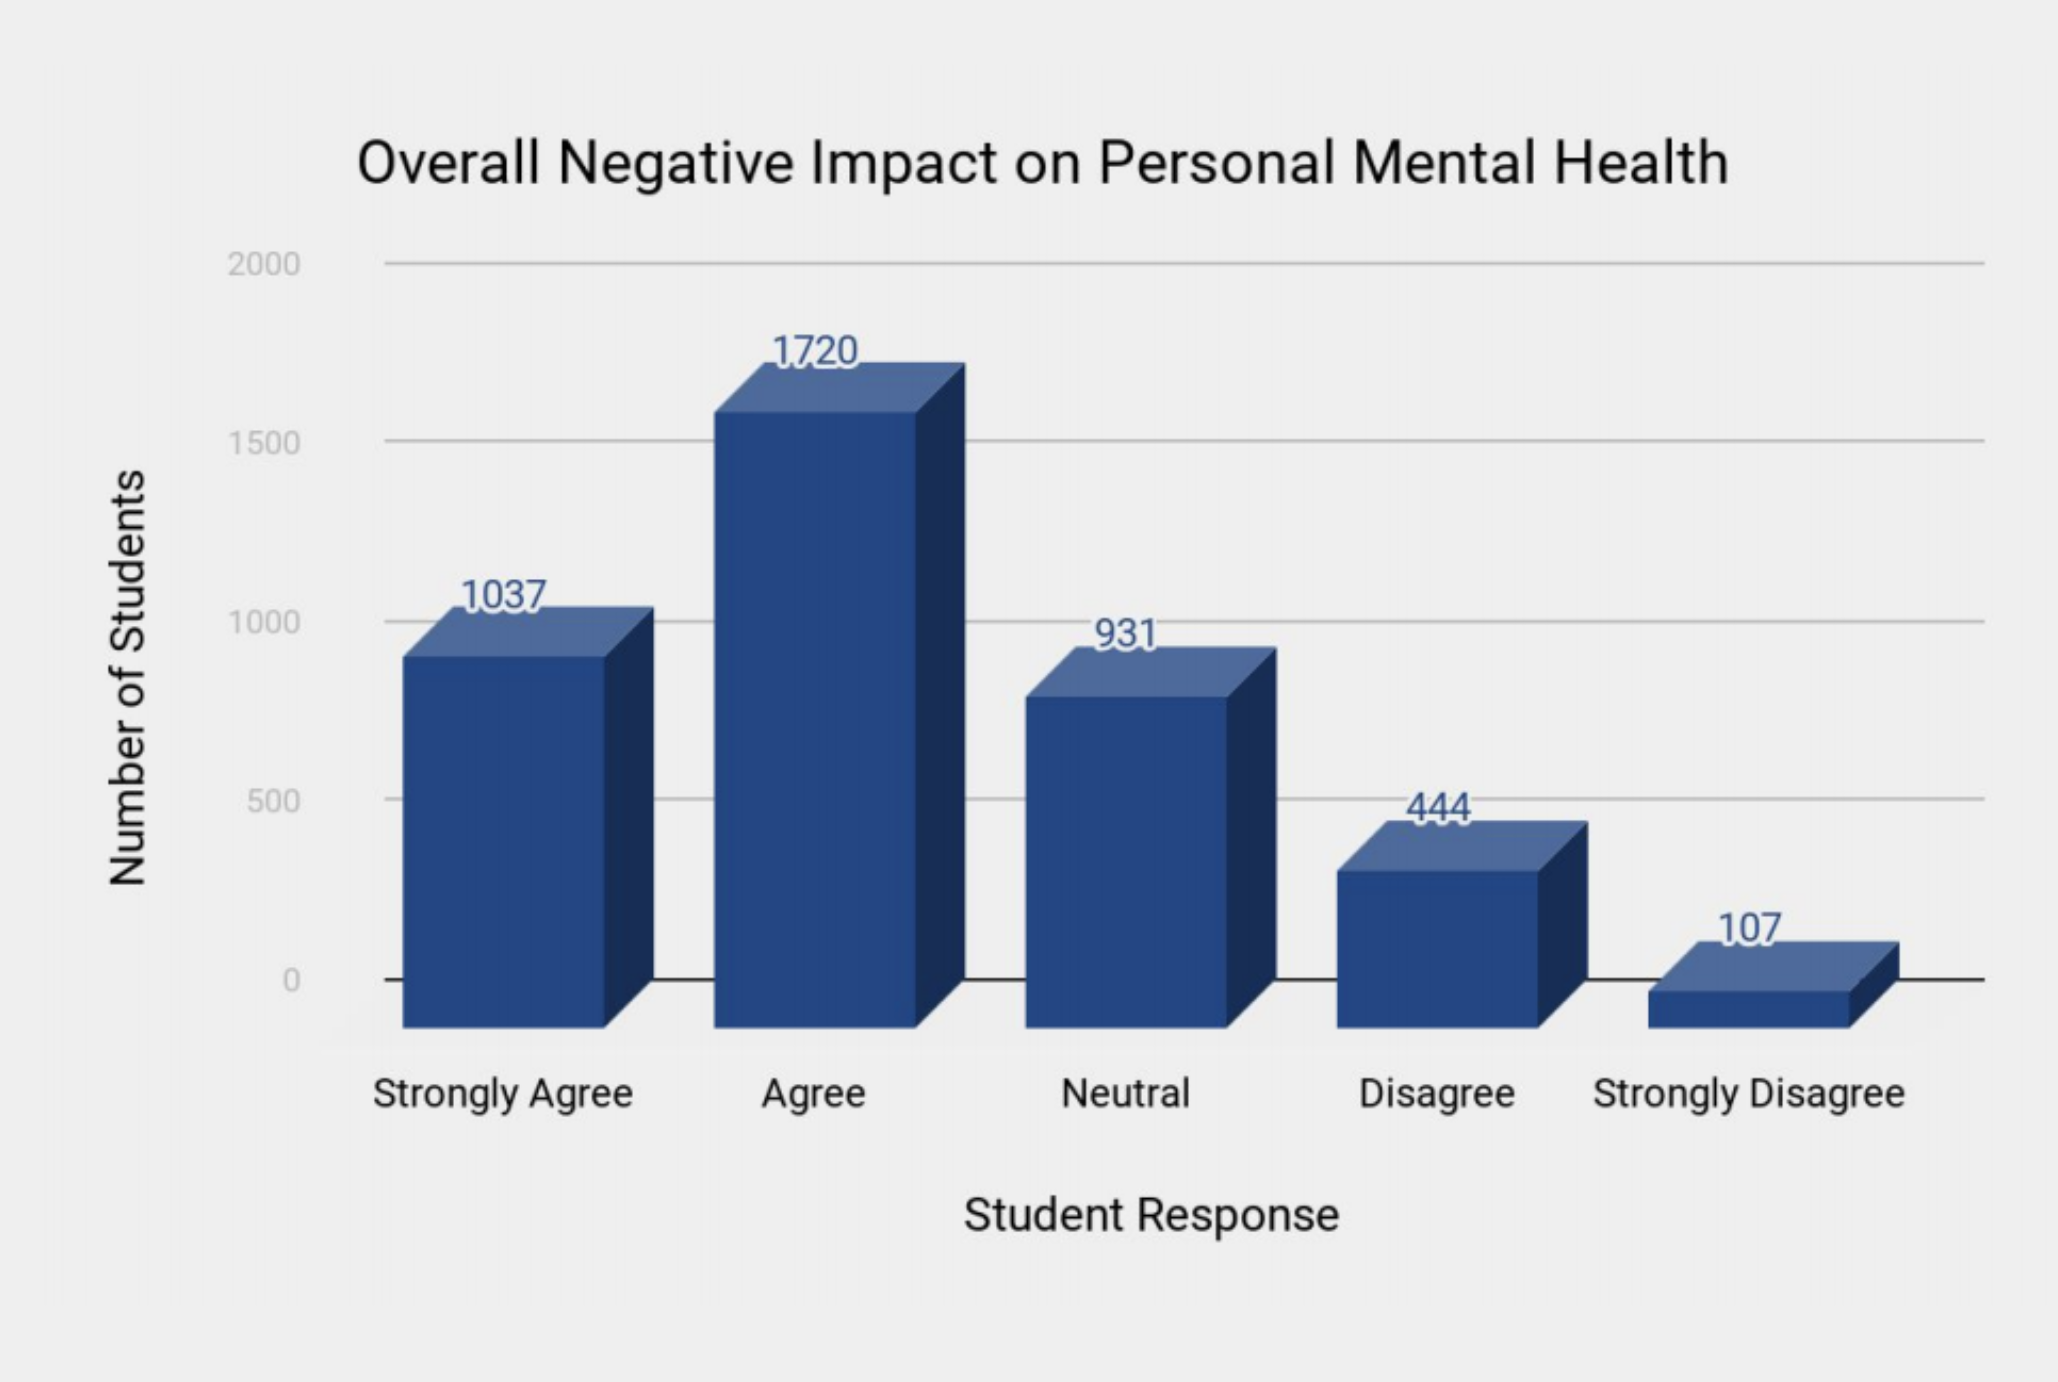 65.1 per cent respondents agreed to an overall negative impact on mental health due to the large-scale changes following the onset of the pandemic.